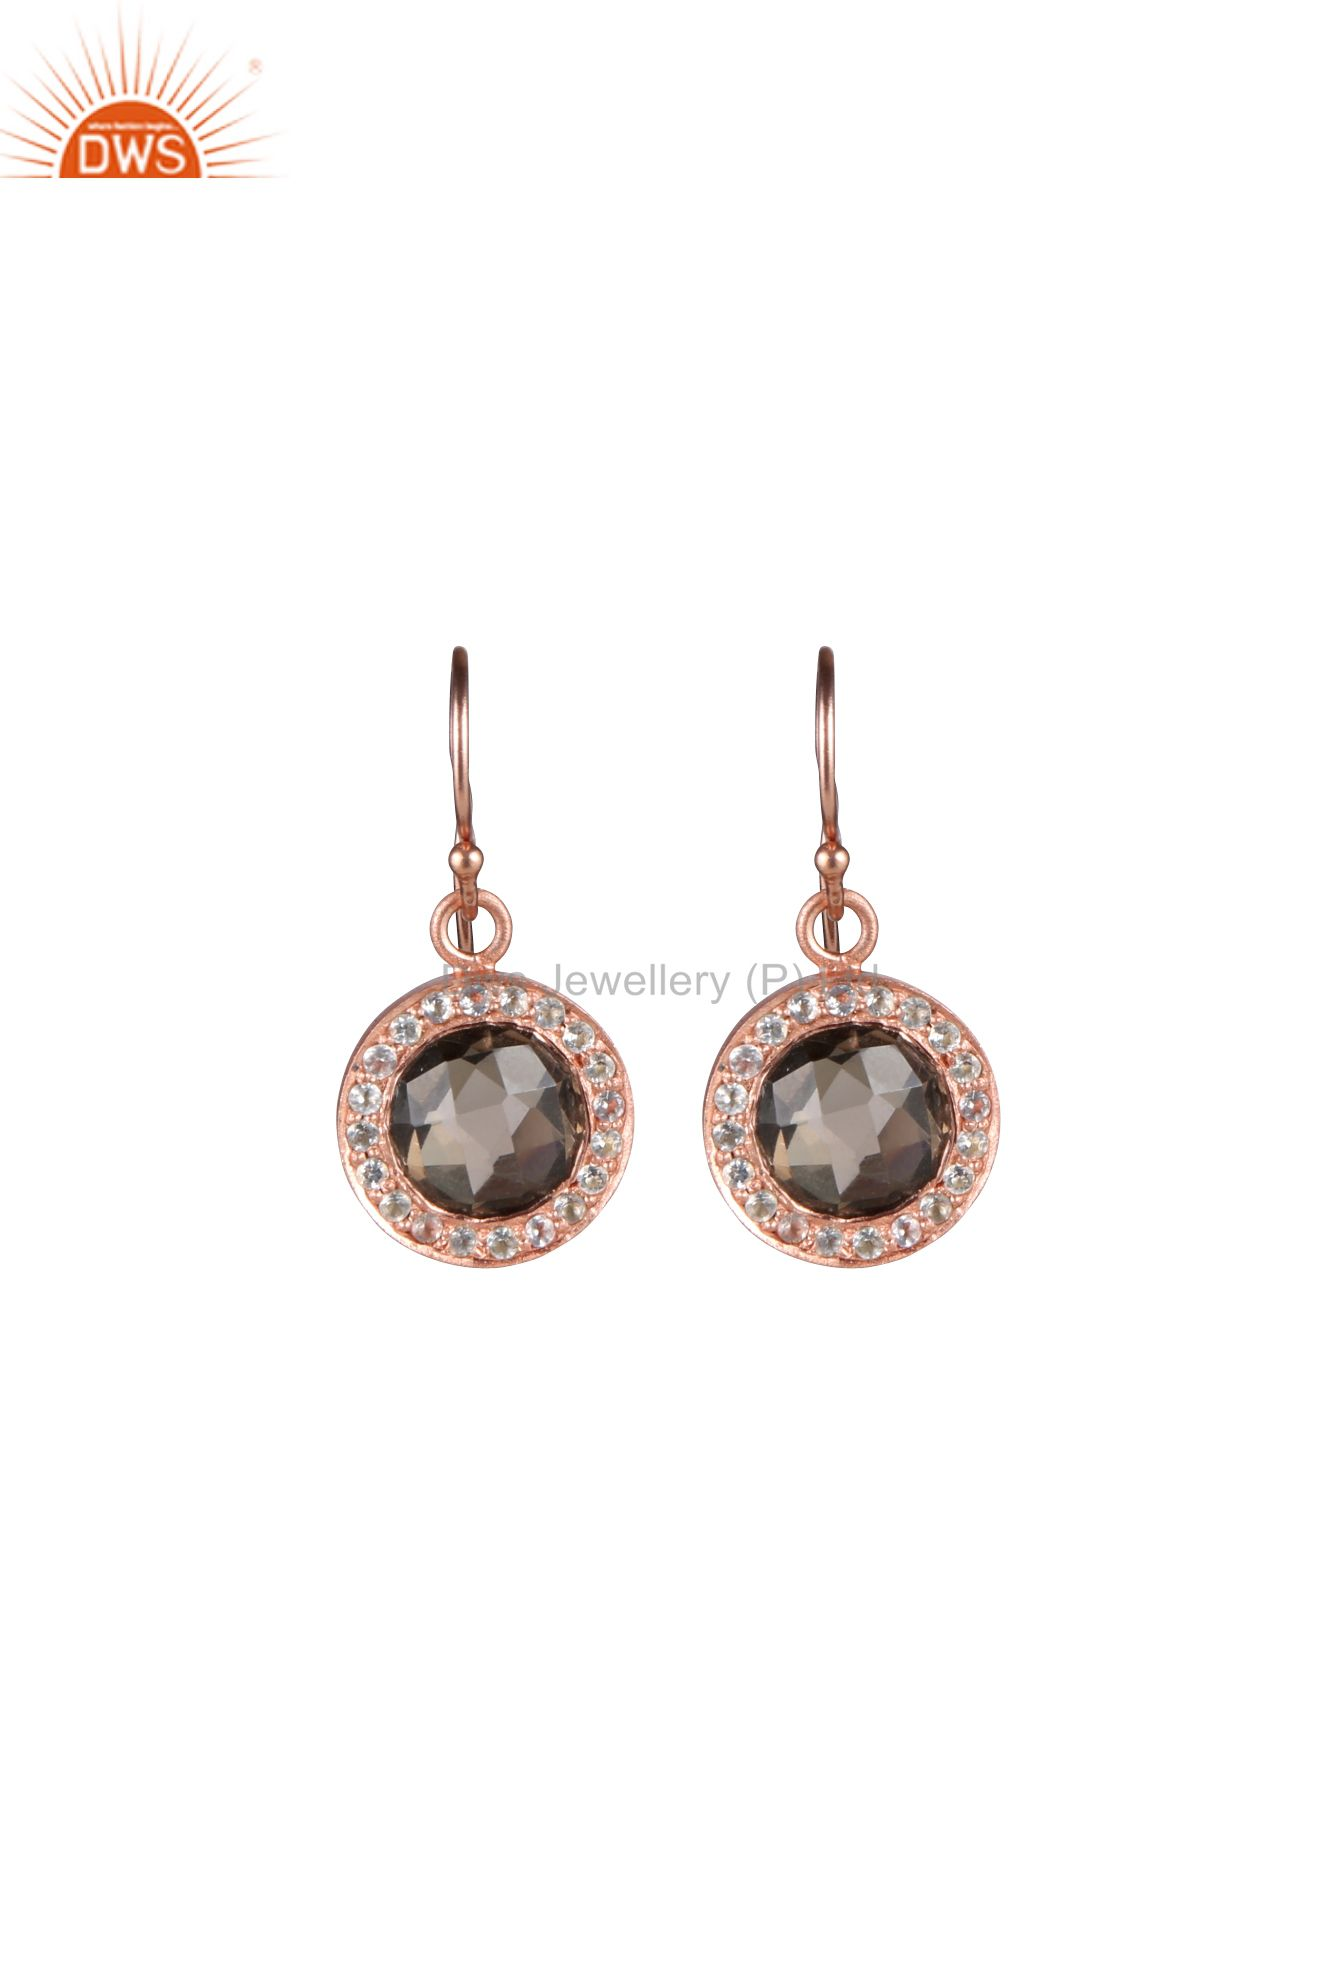 18K Rose Gold Plated Sterling Silver Smoky Quartz And White Topaz Halo Earrings